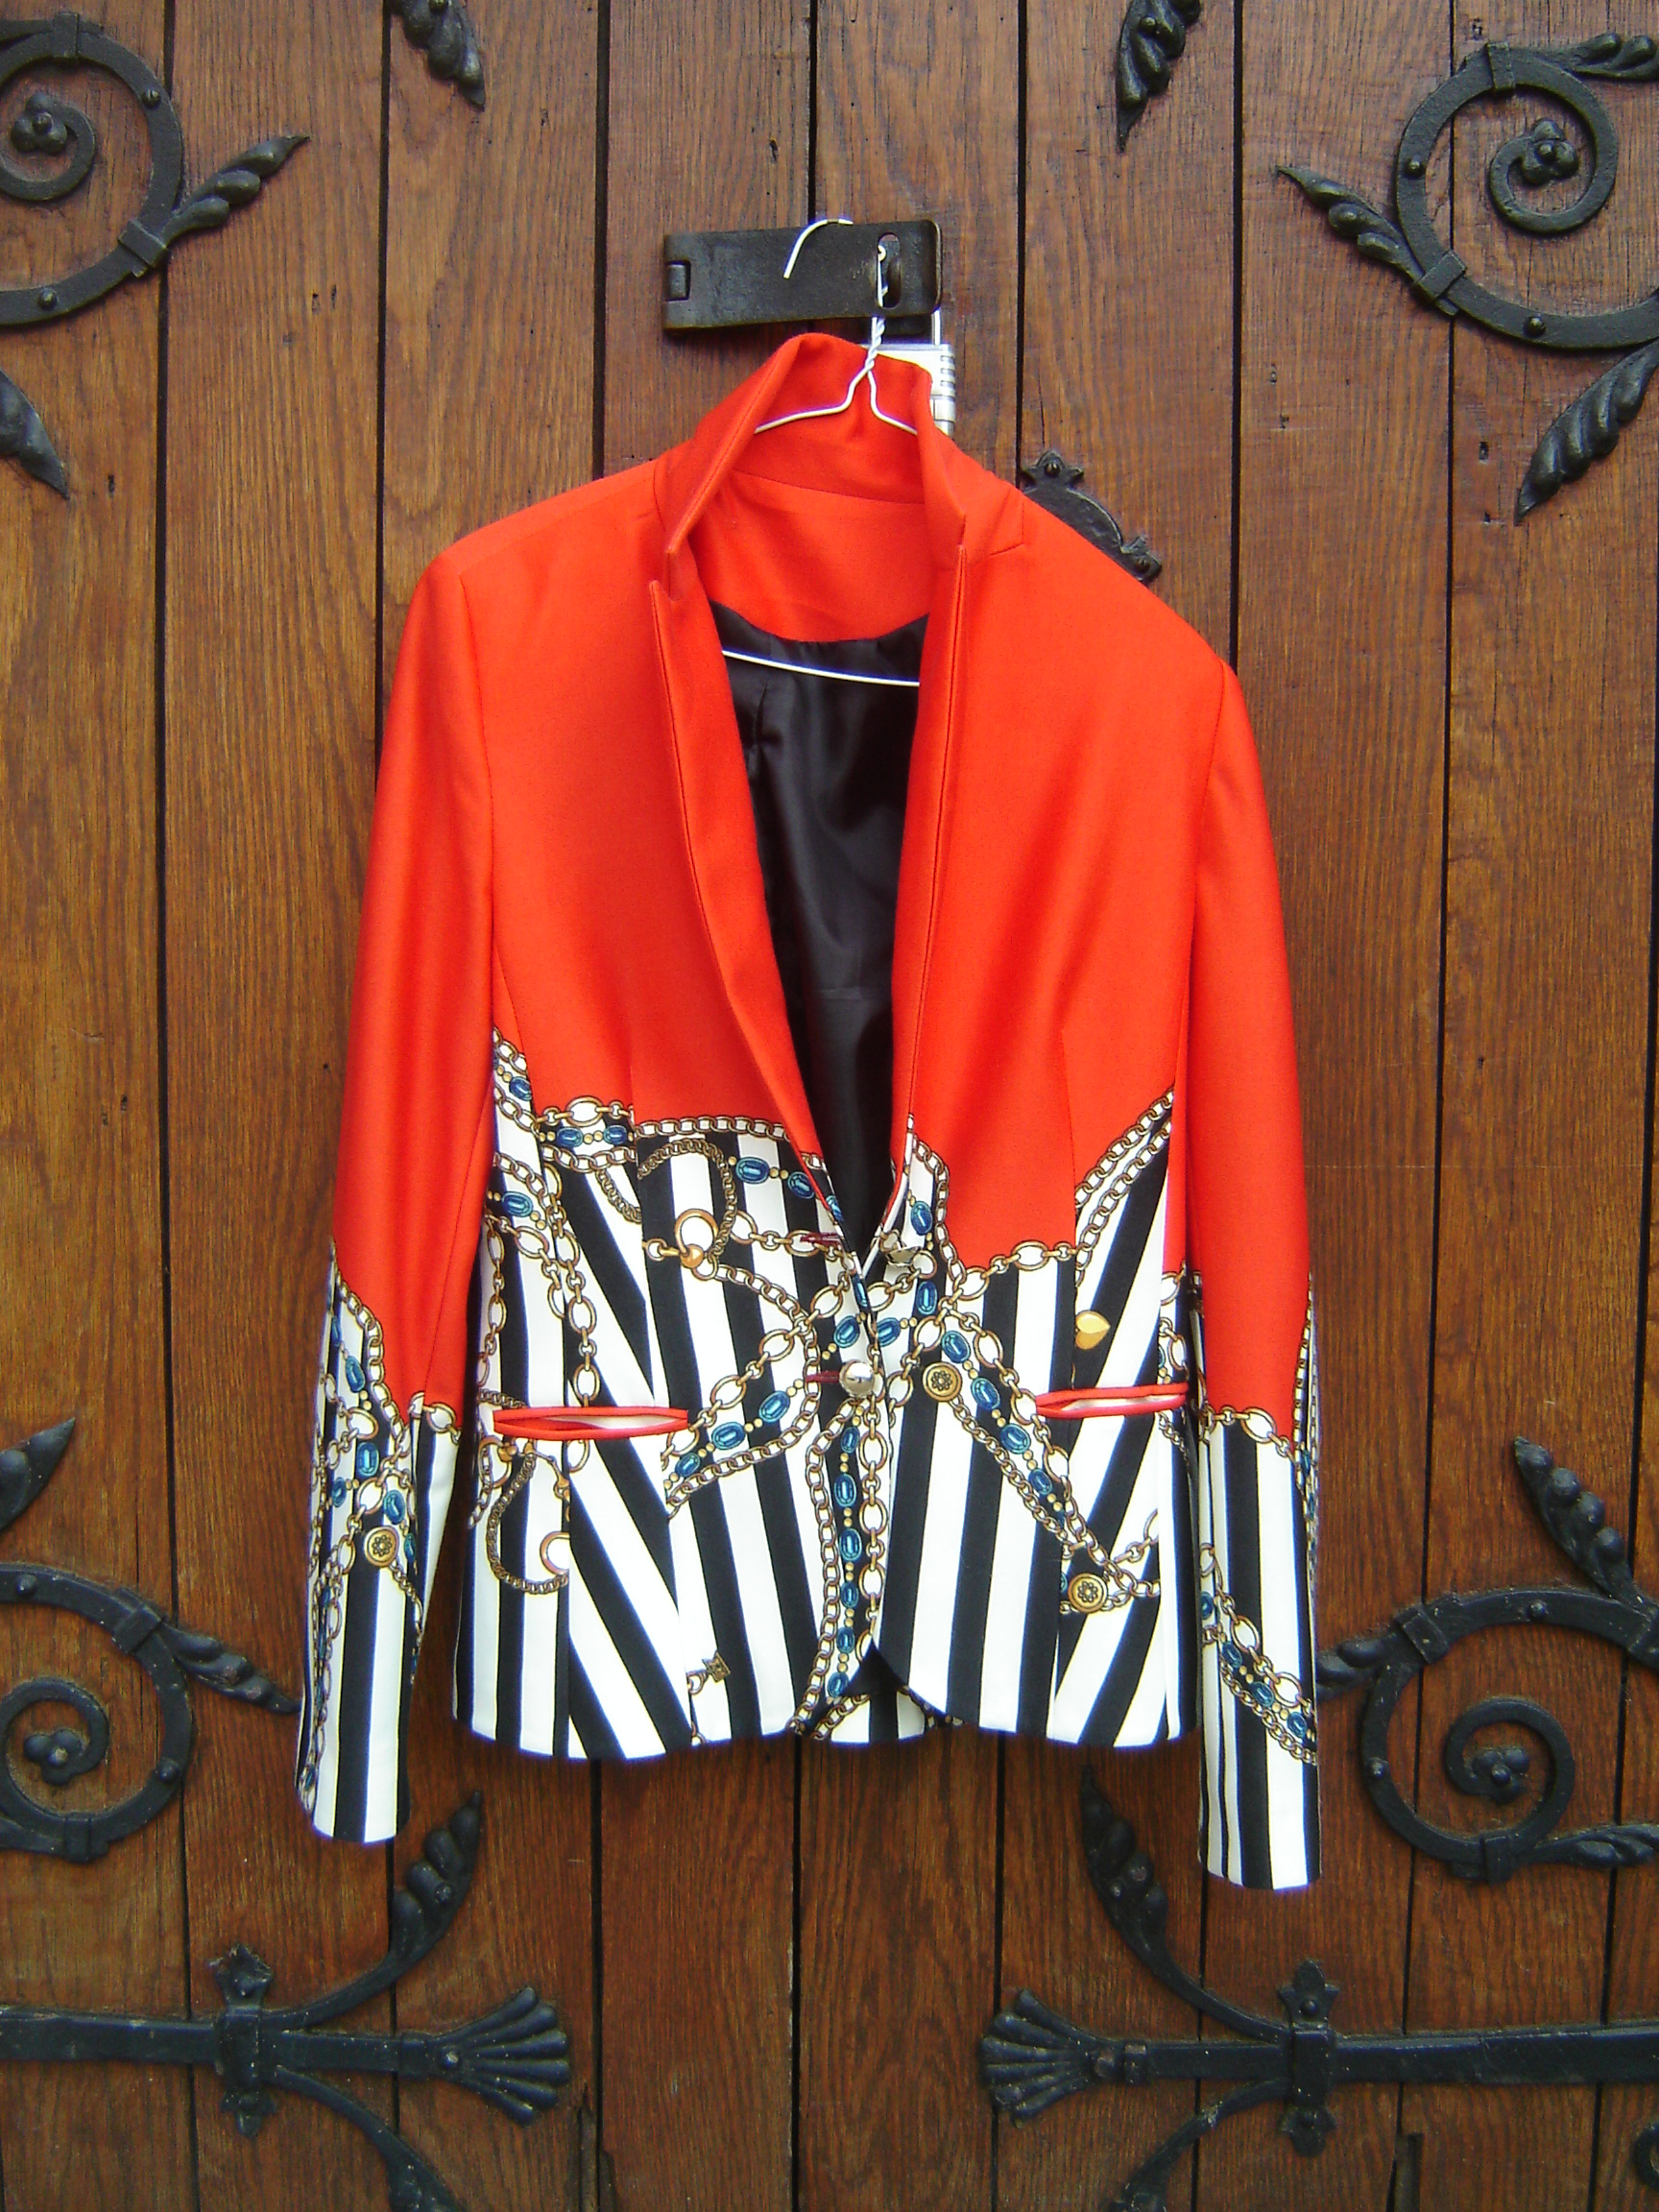 Red wool jacket with printed chain design.